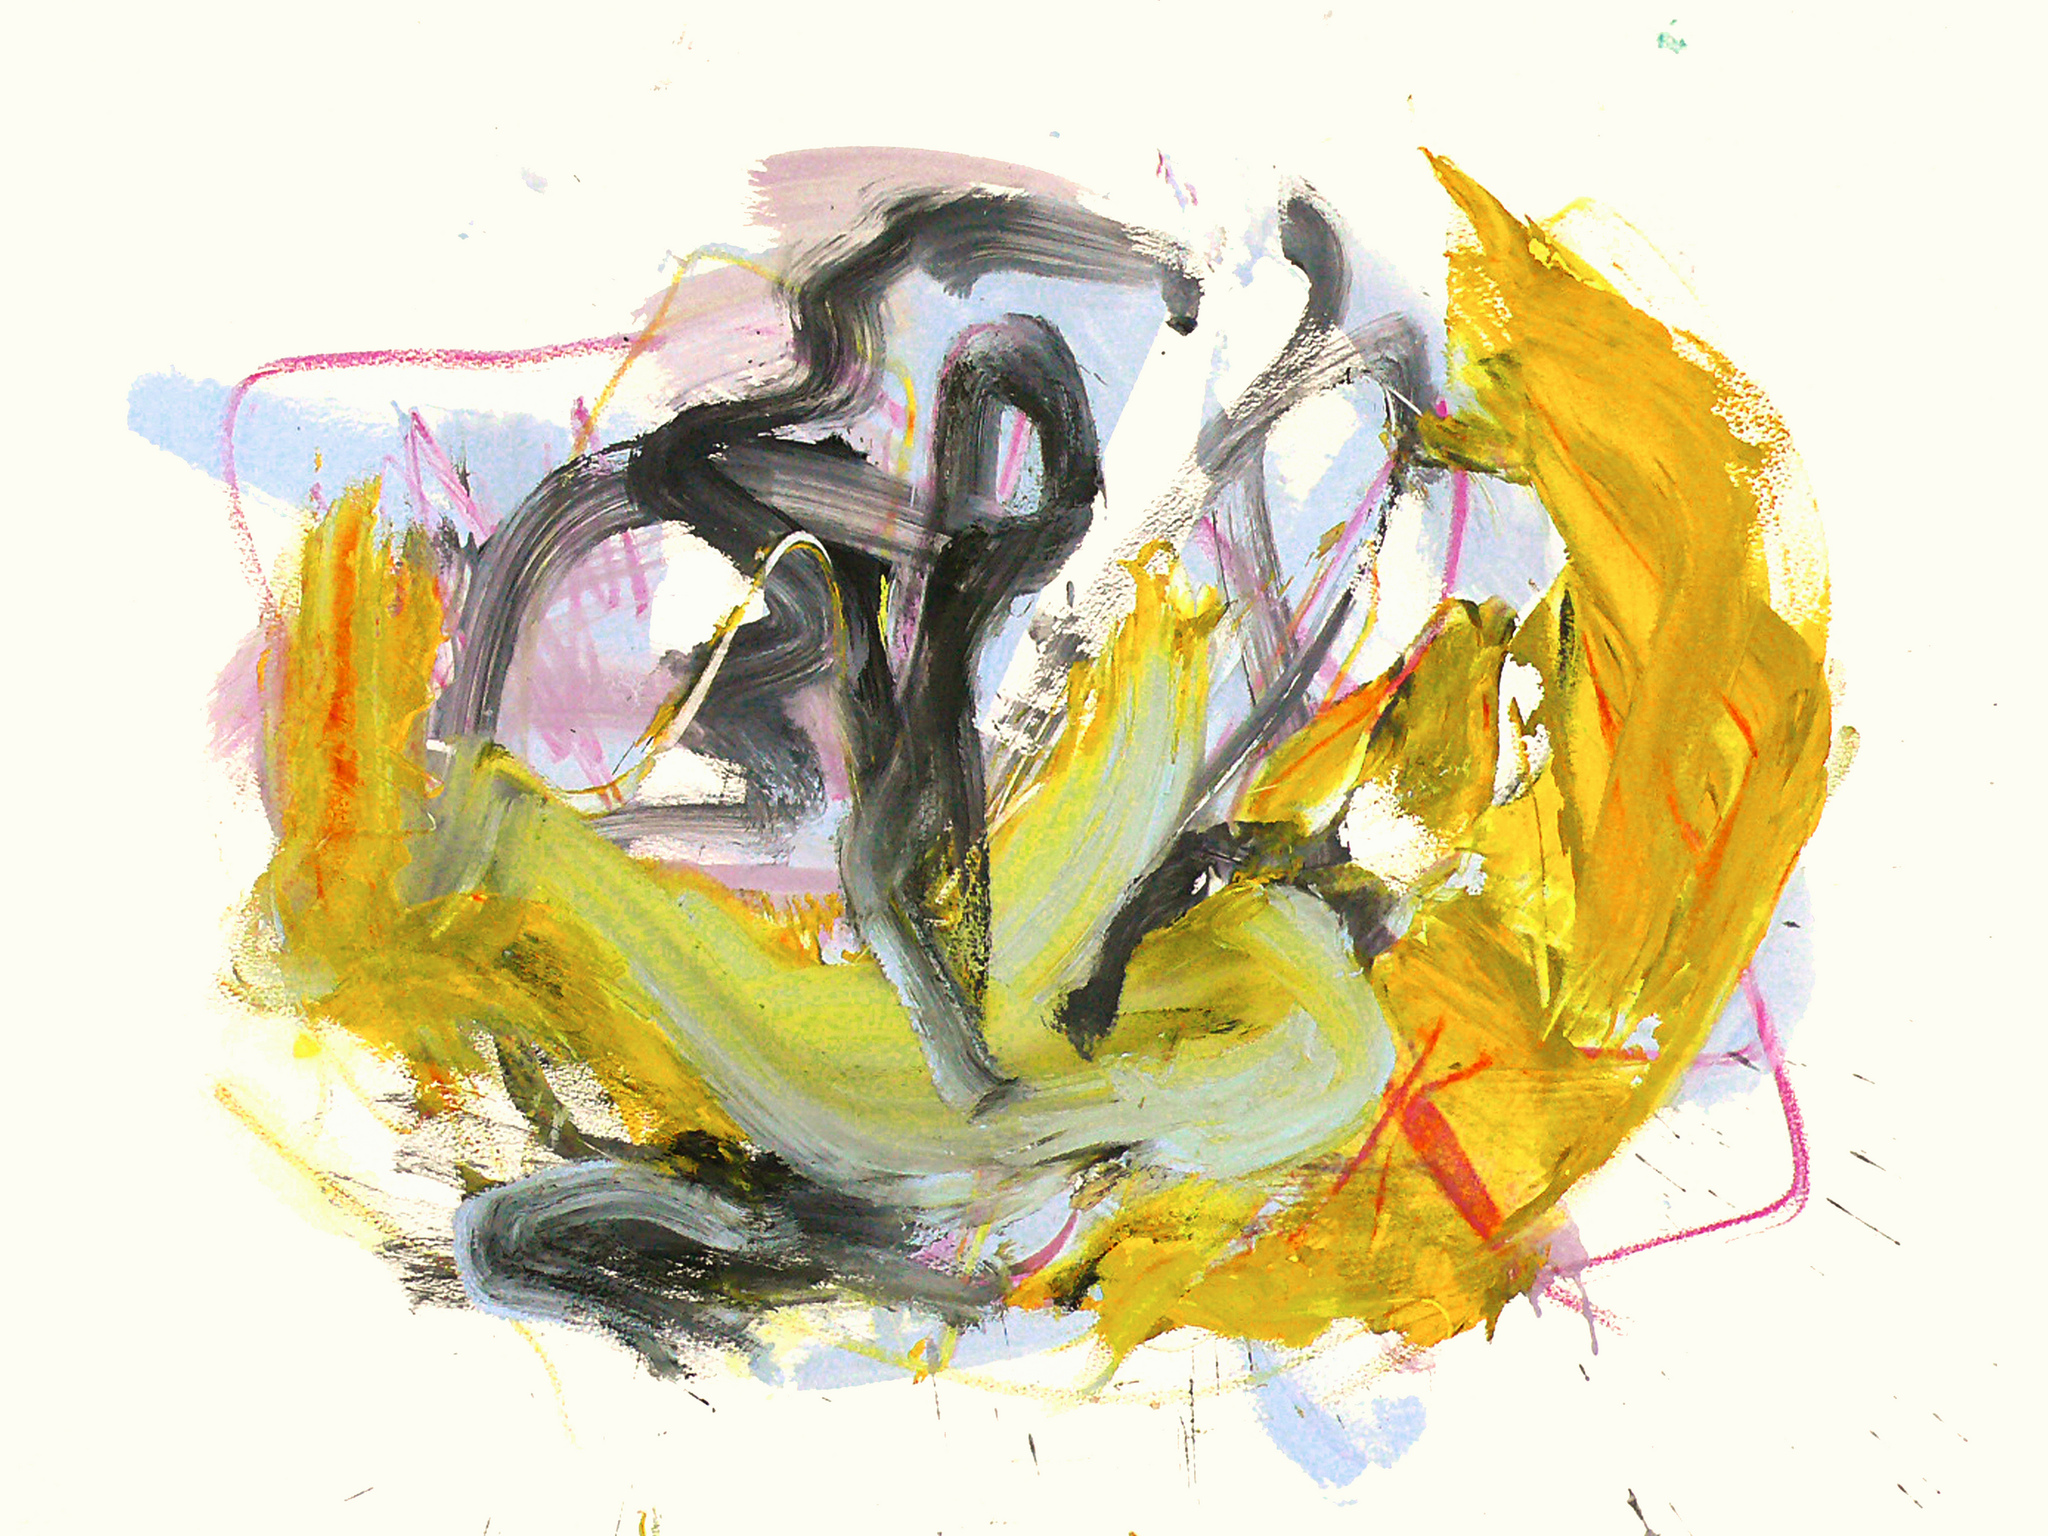 Abstract painting featuring chunky and light brushstrokes in ochre, pink, and charcoal